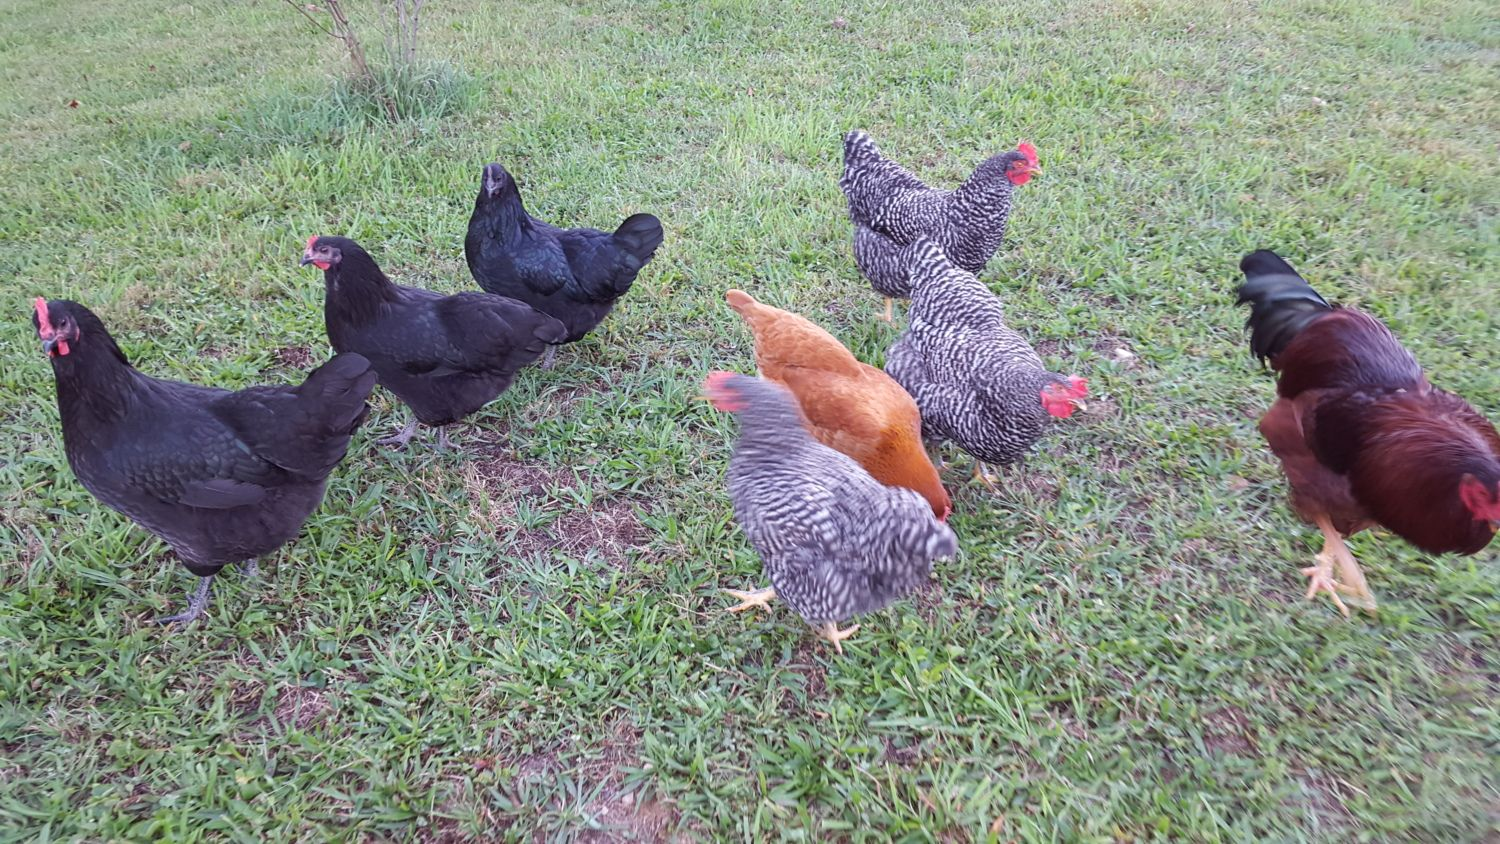 2015 Chickens:  3 Black Astralorp, 3 Barred Rock, and 1 New Hampshire.  1 RIR Rooster.